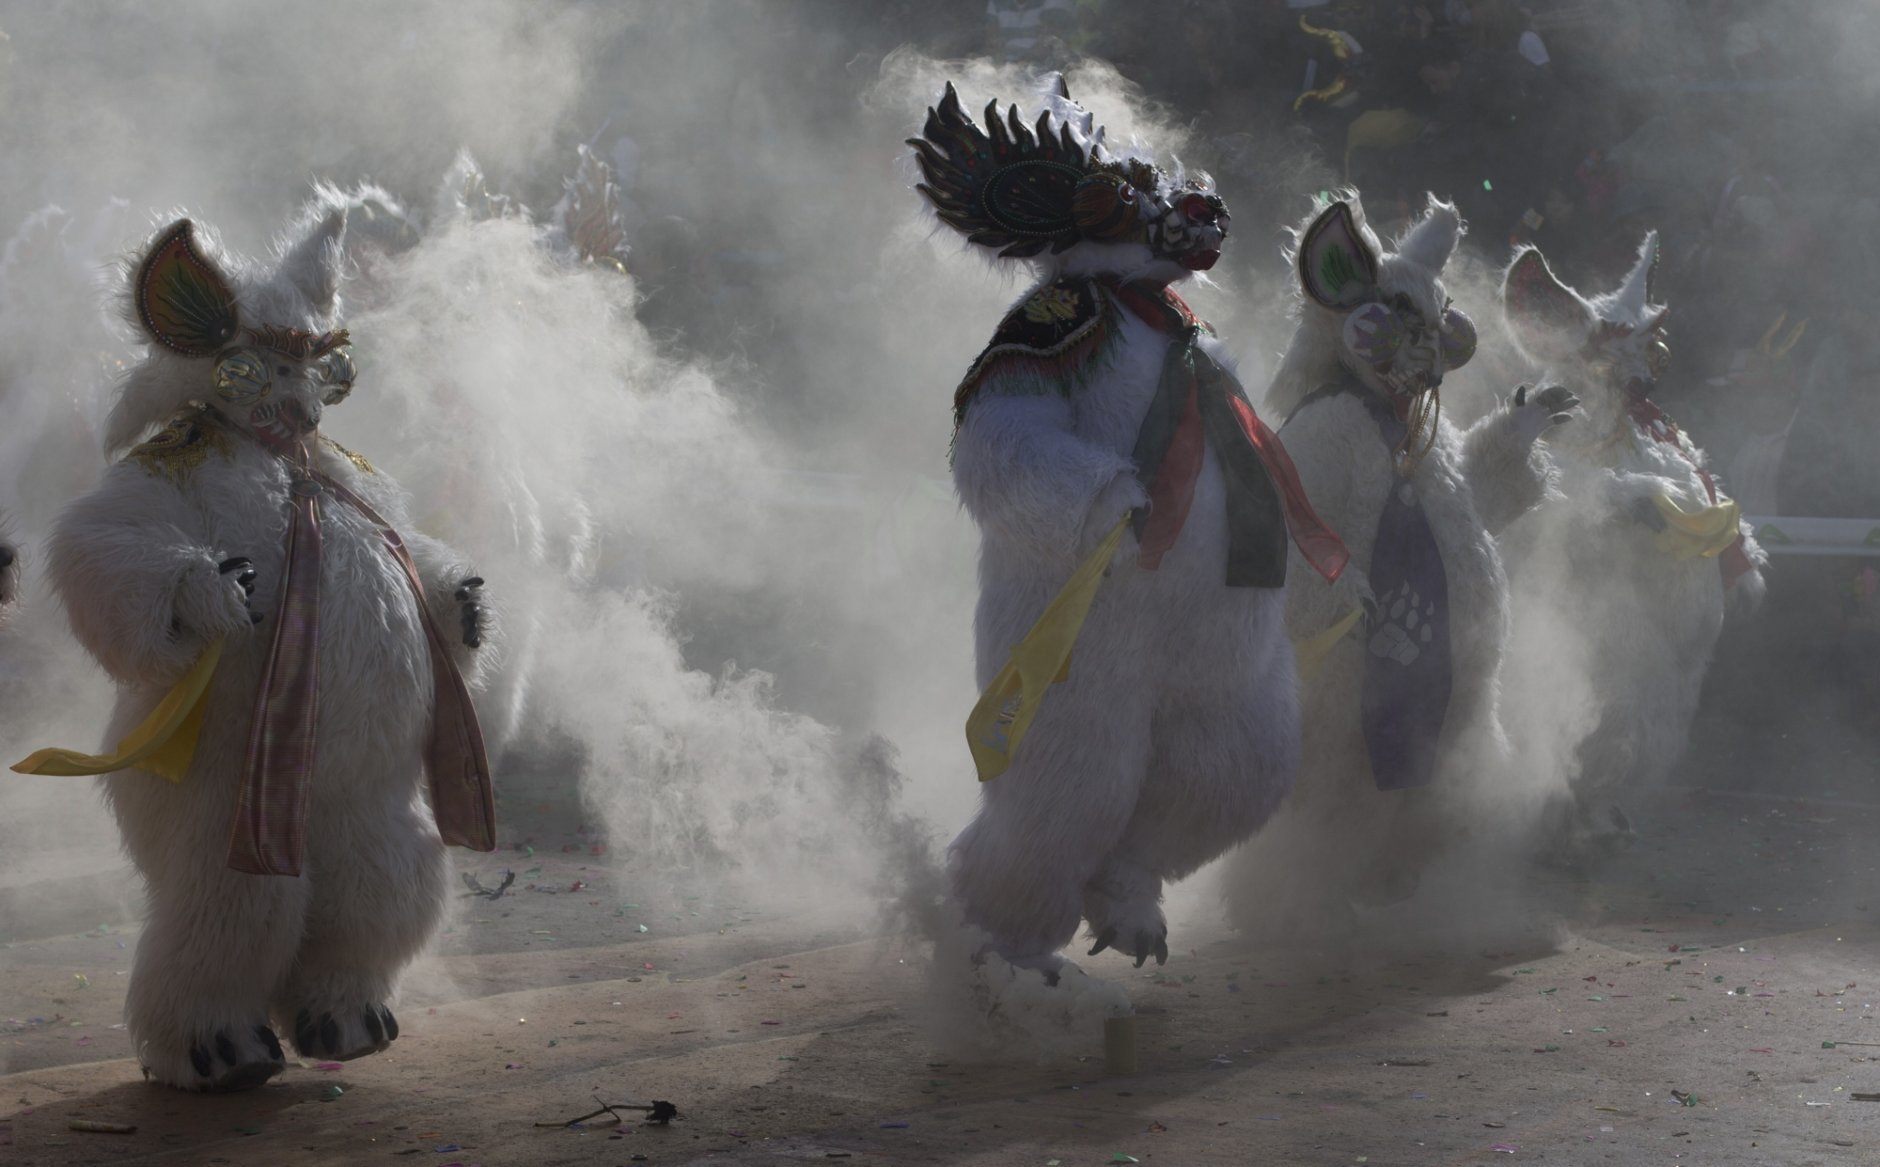 """Dancers perform the traditional """"Diablada,"""" or Dance of the Devils, during carnival celebrations in Oruro, Bolivia, Saturday, March 2, 2019. The festival features folk dances, costumes, crafts, music and up to 20 hours of continuous partying. (AP Photo/Juan Karita)"""